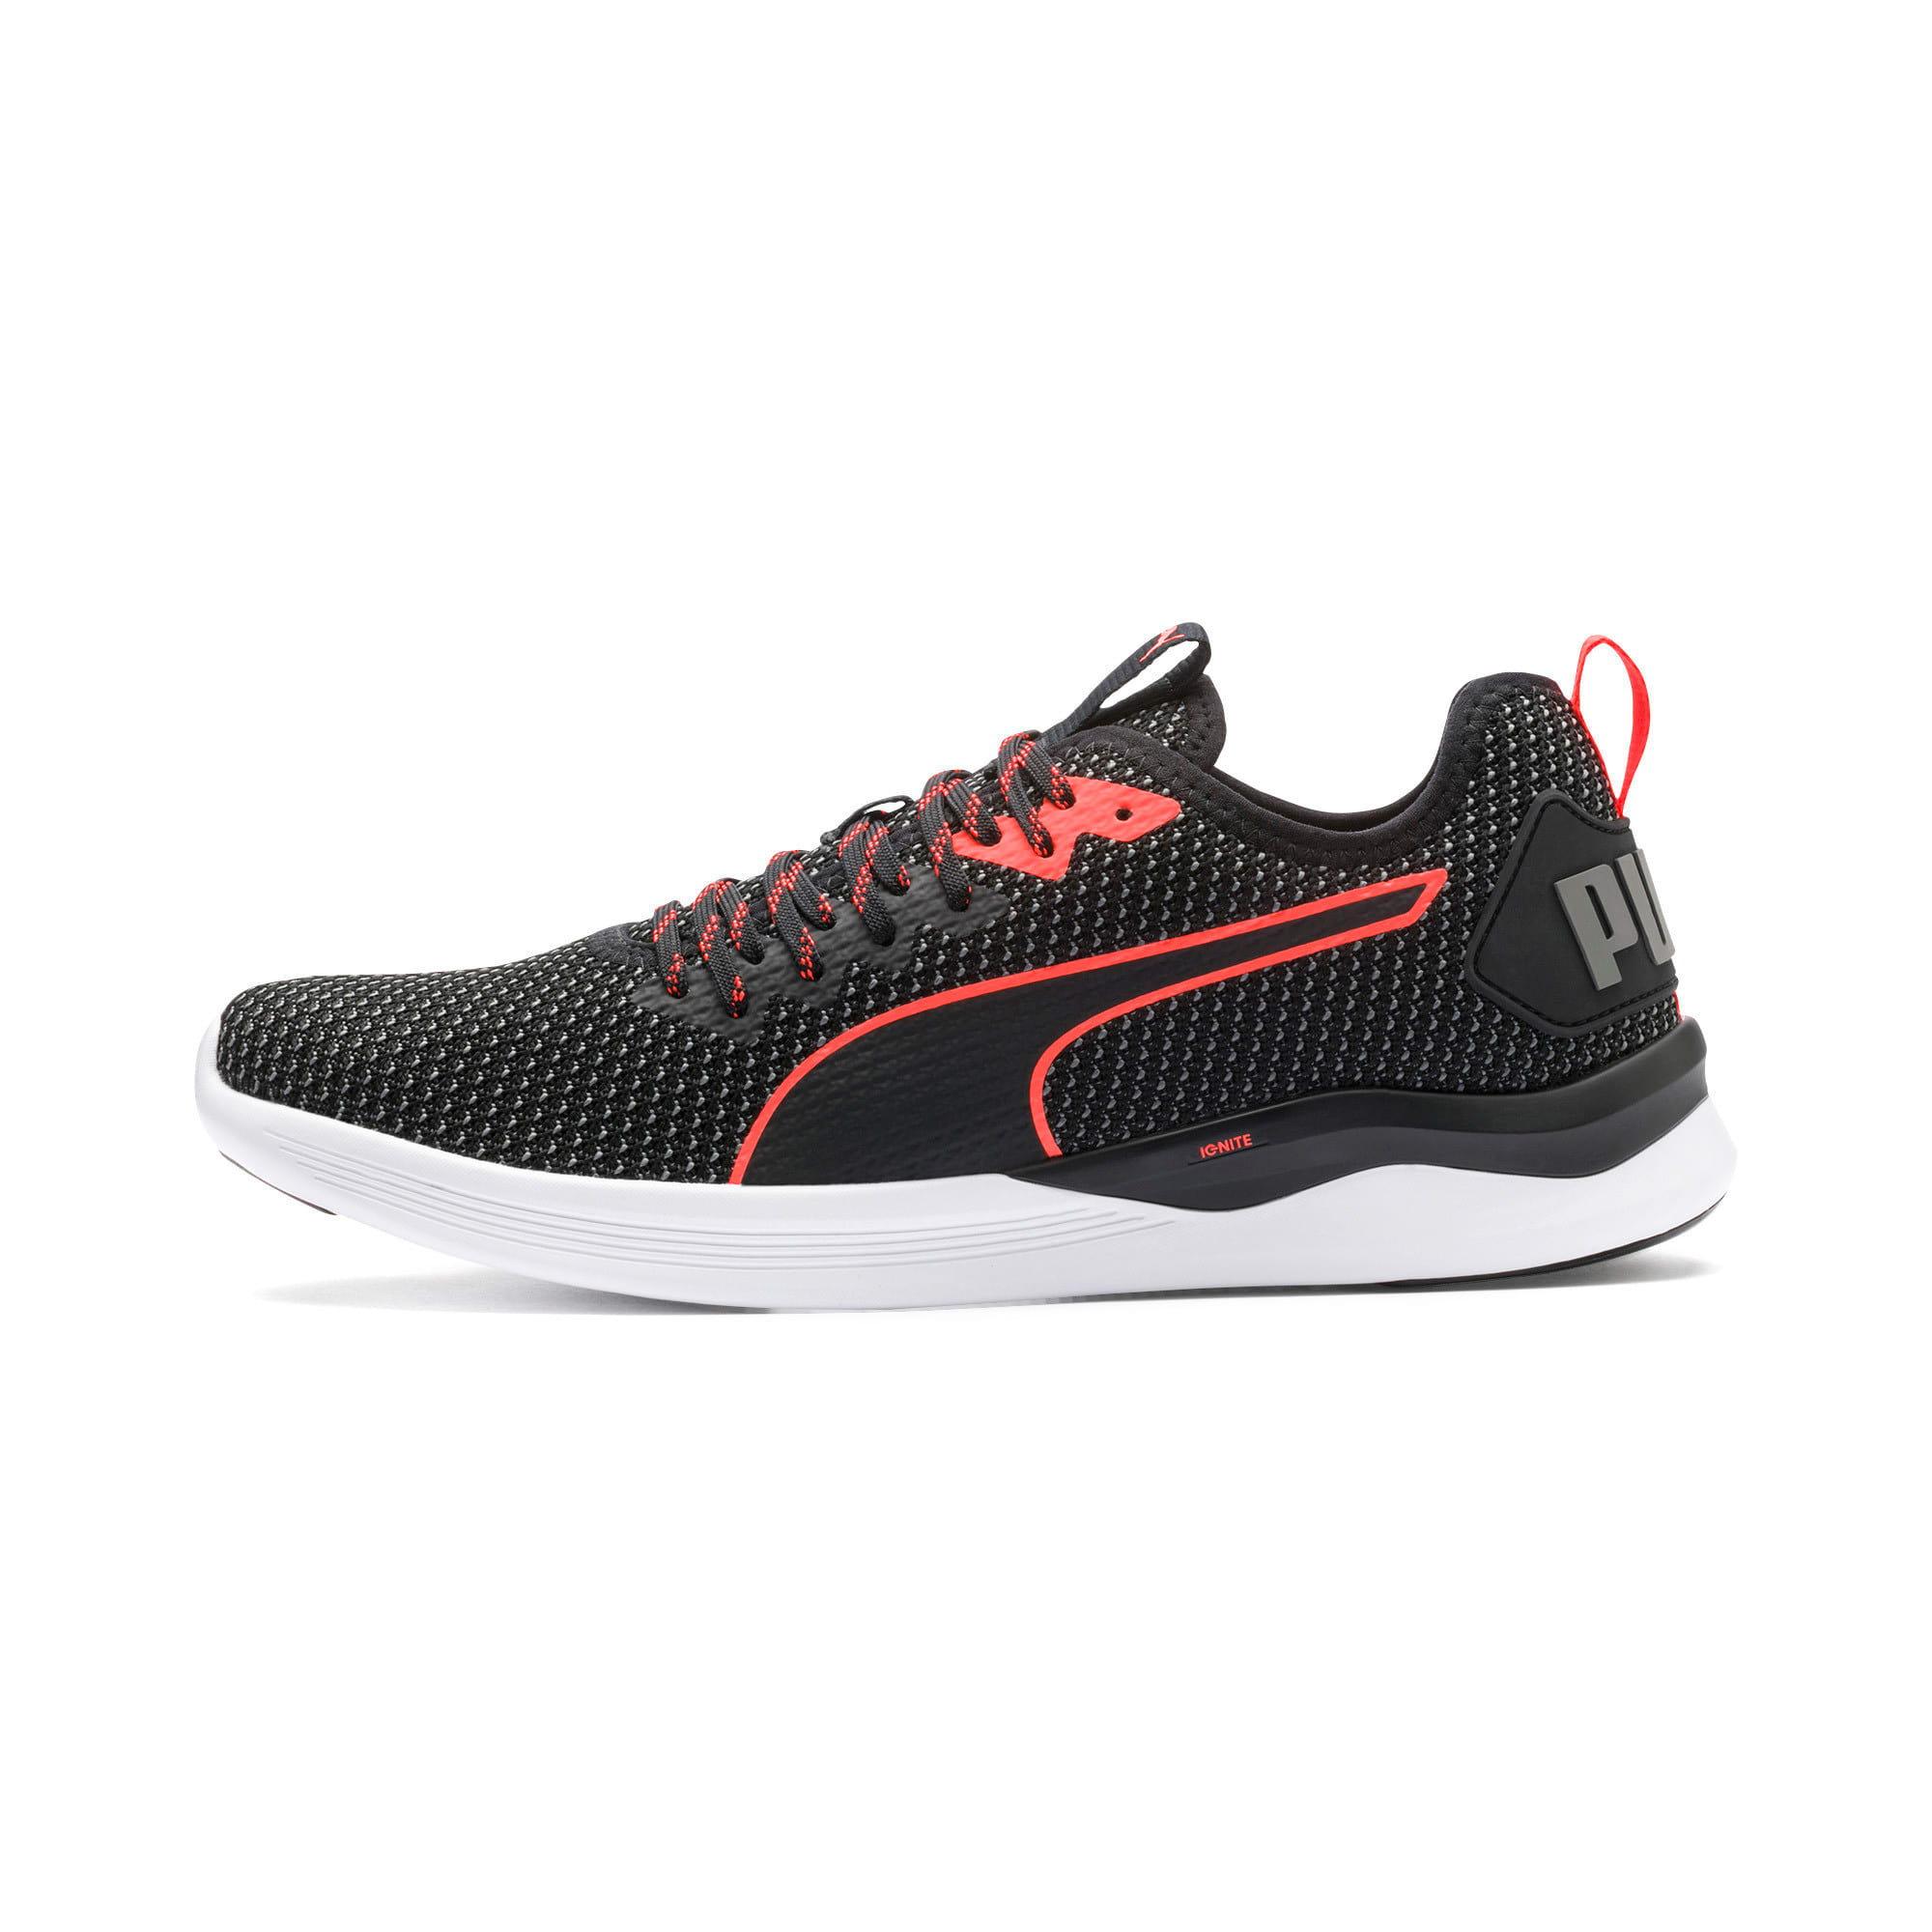 Thumbnail 1 of IGNITE Flash FS Men's Running Shoes, Puma Black-Nrgy Red, medium-IND